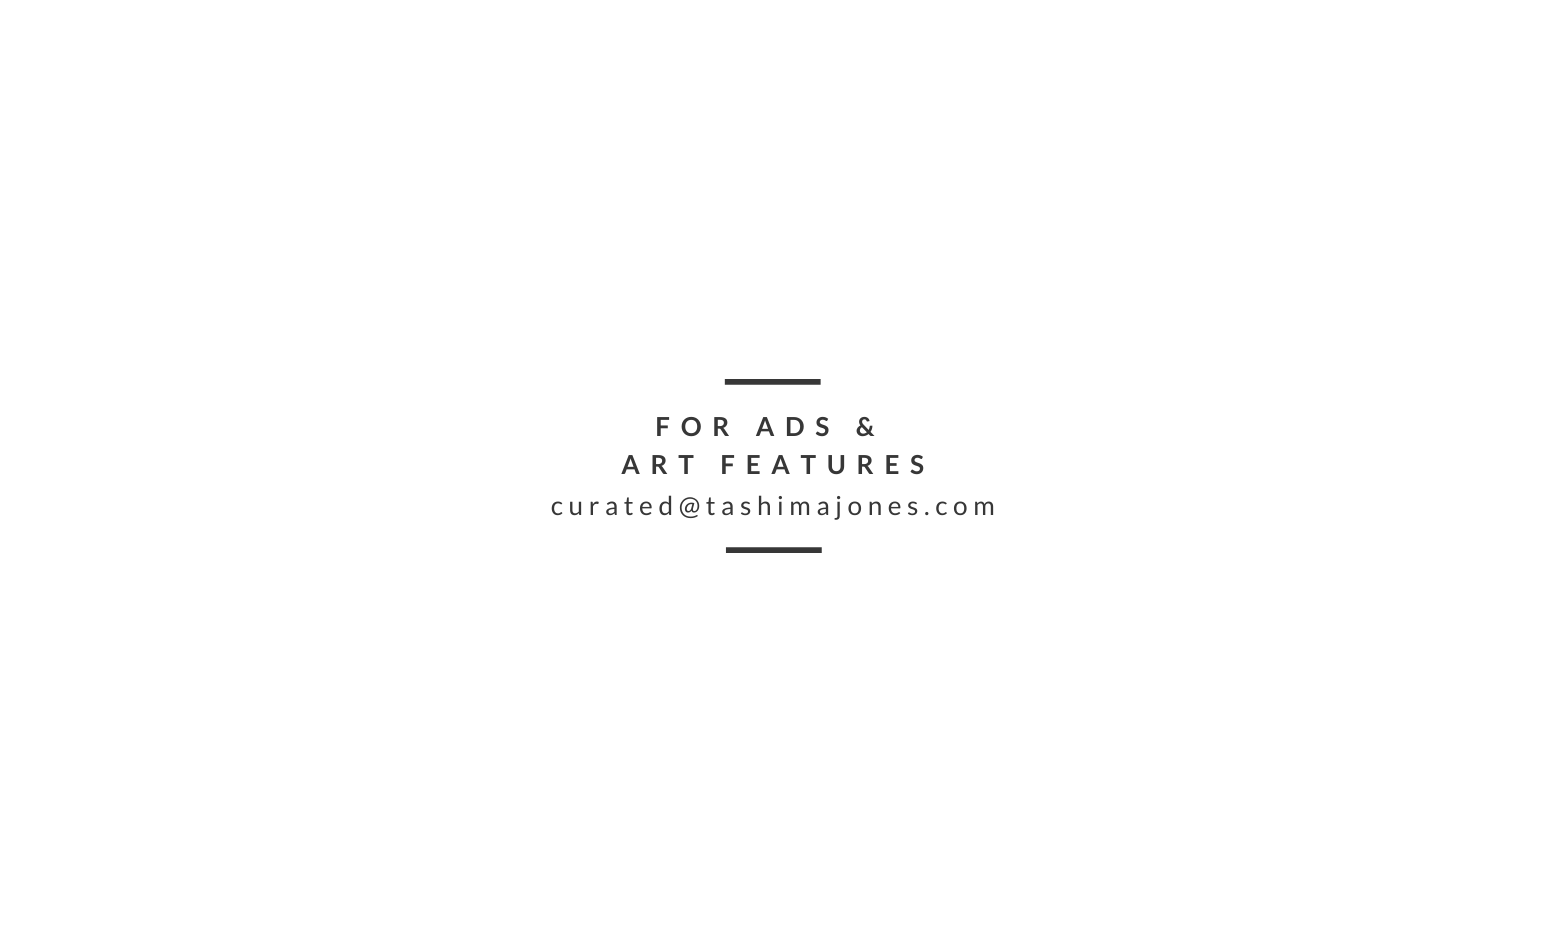 Curated, A TJM Publication - For Ads & Art Features